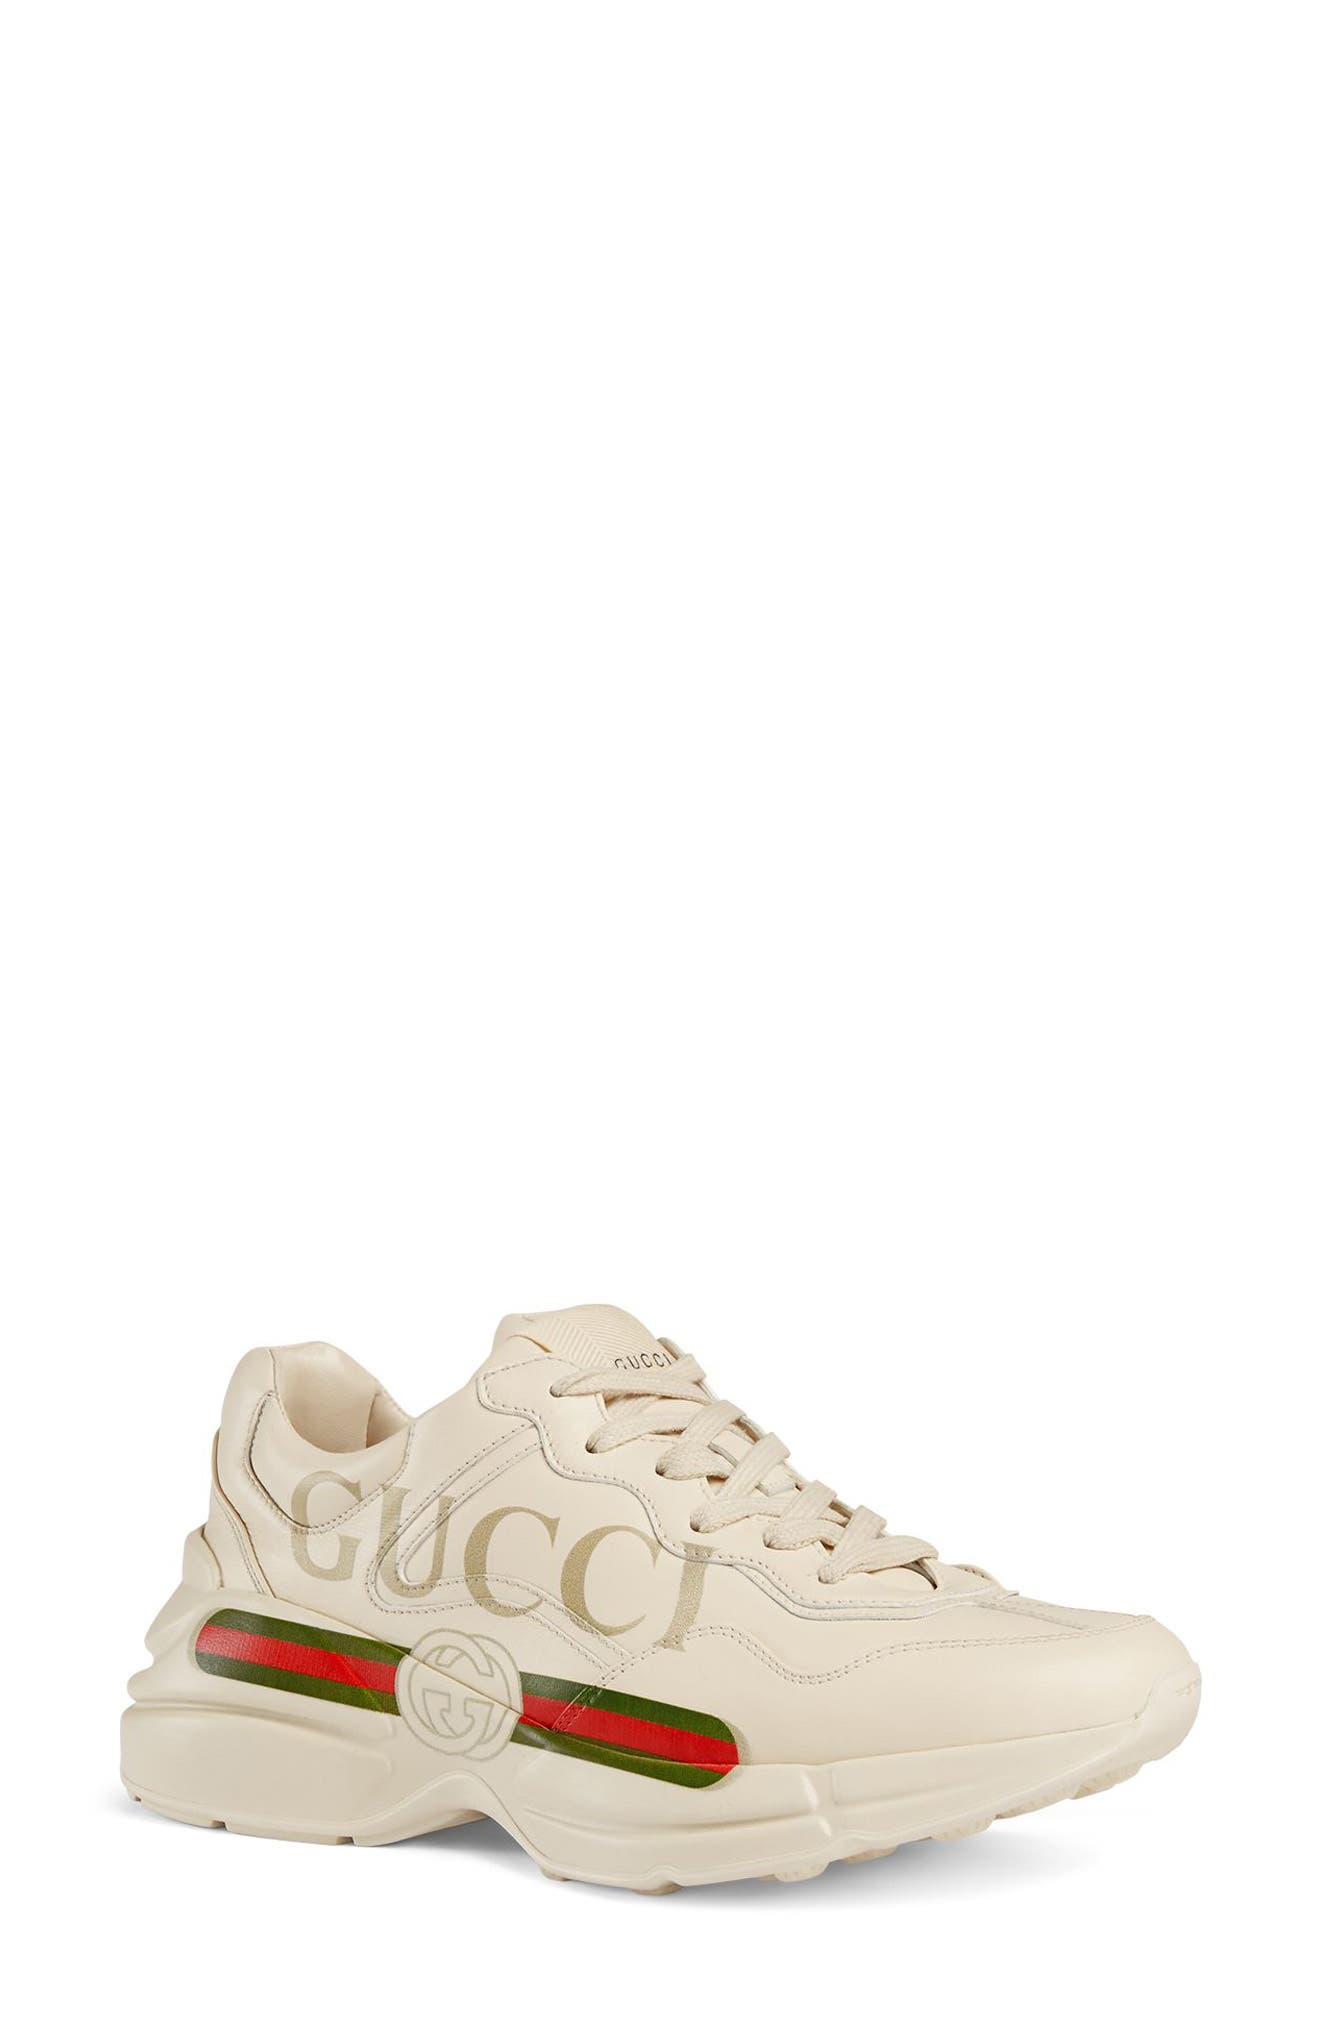 Women's Gucci Shoes   Nordstrom